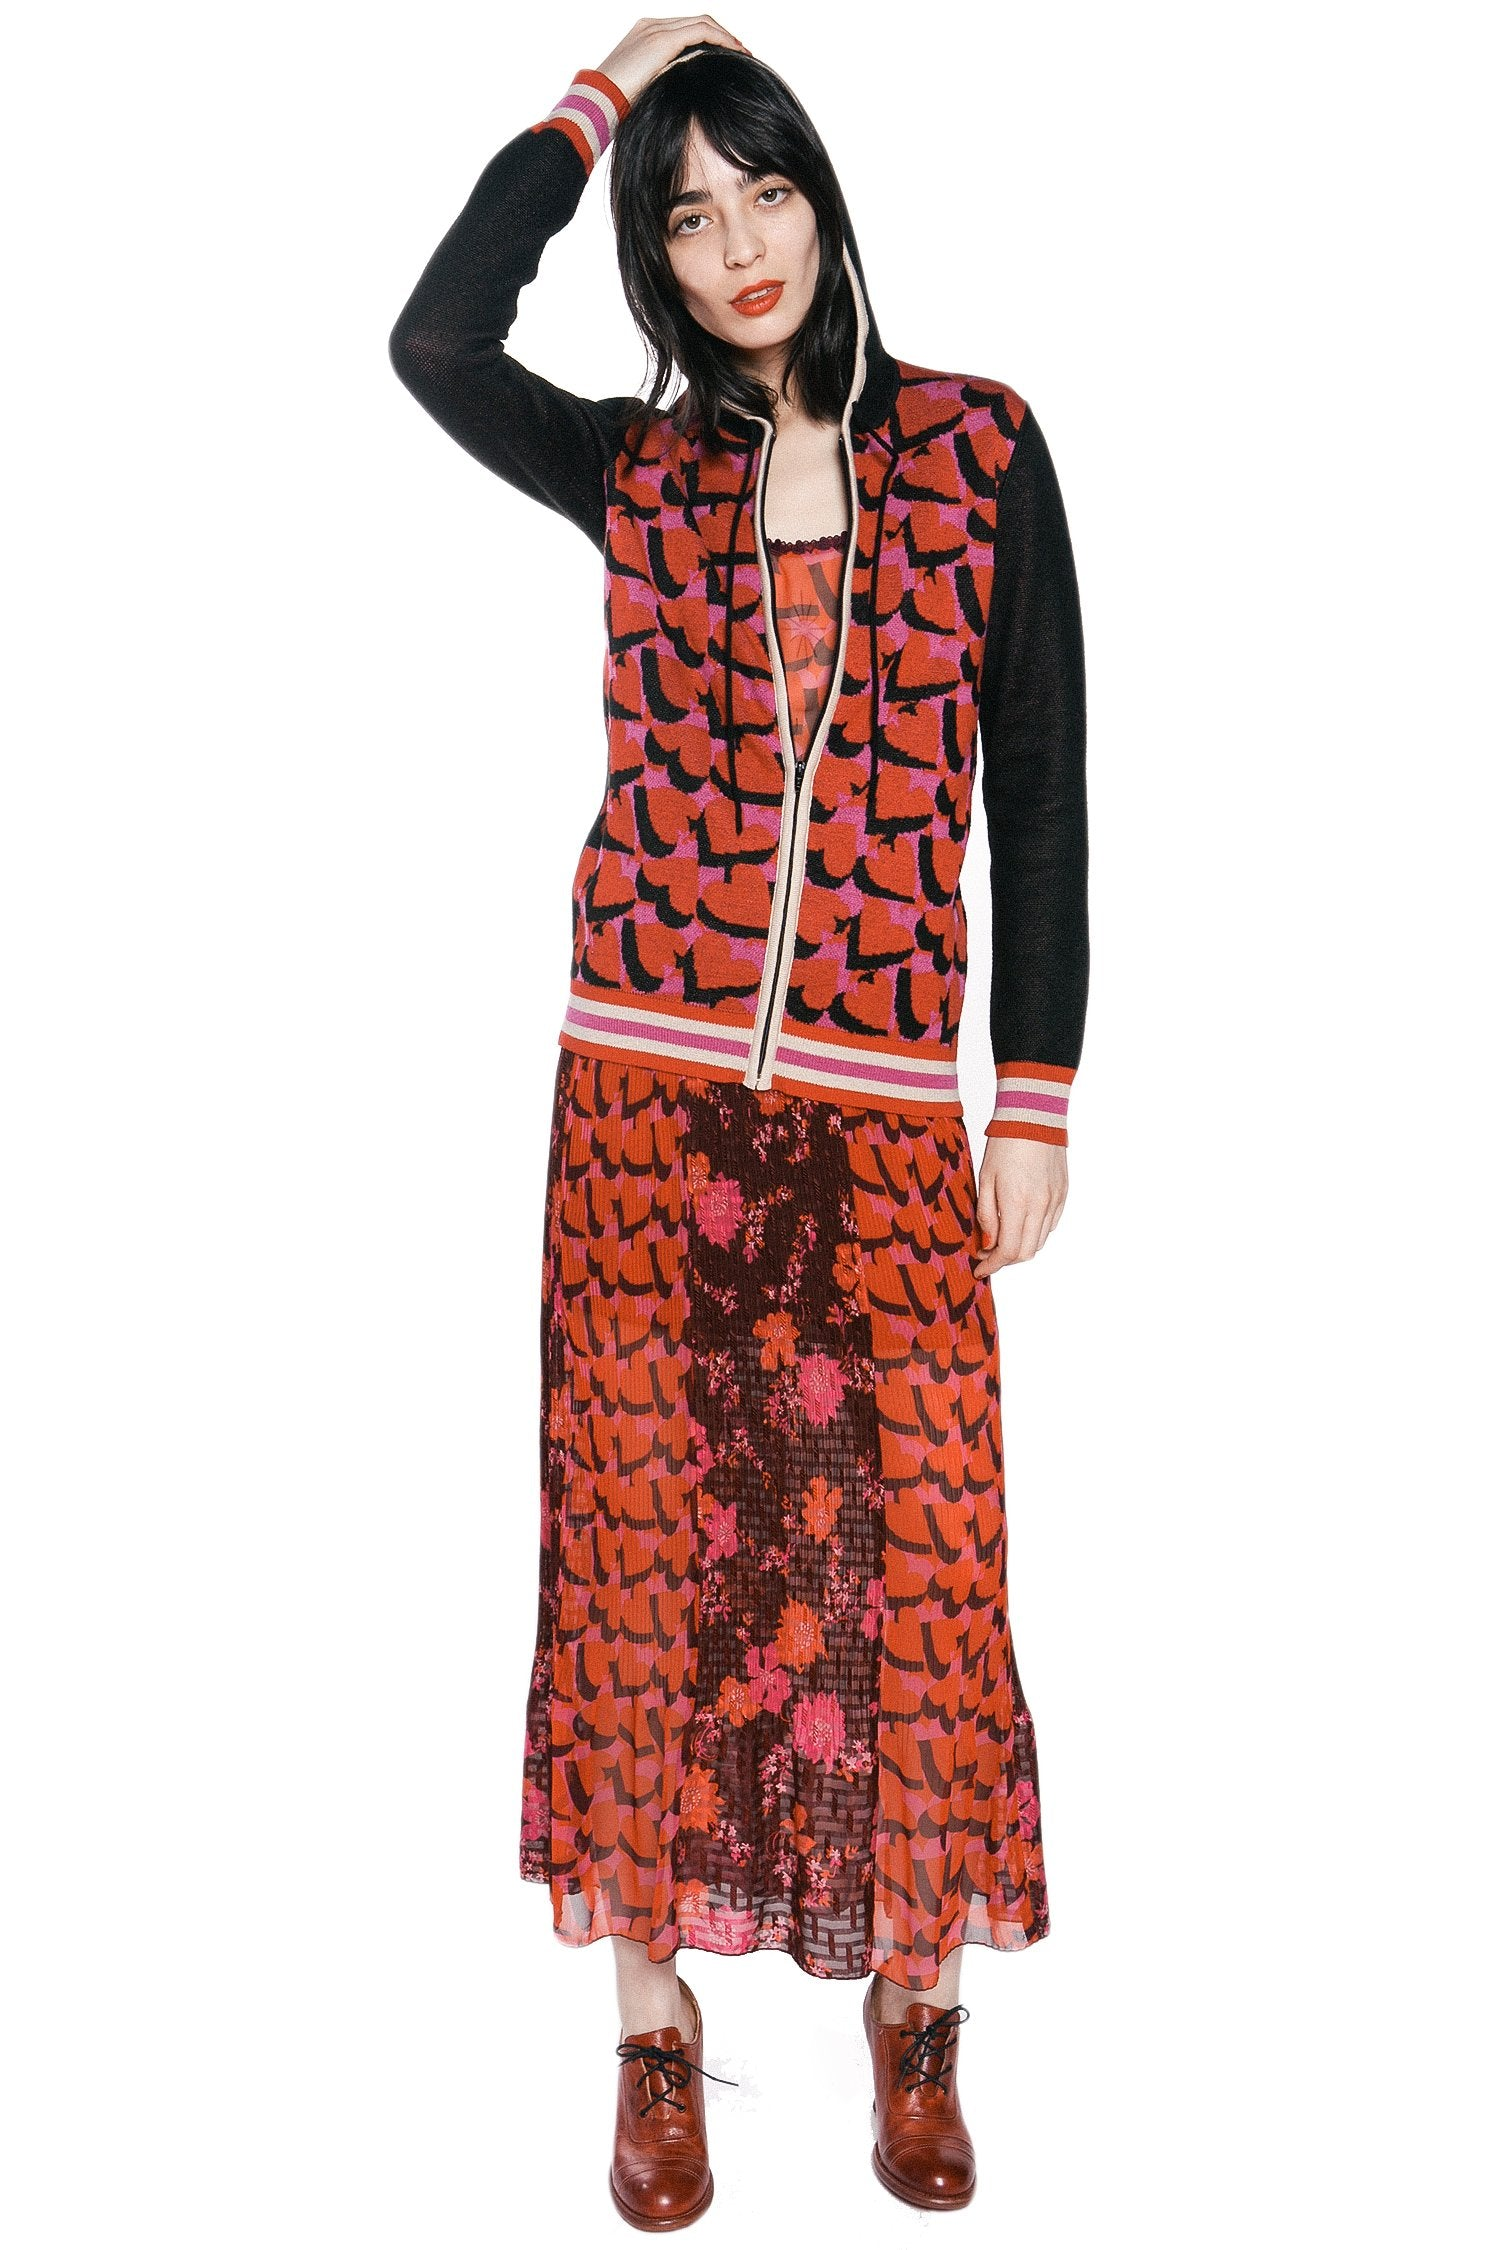 James Coviello Hearts & Cherries Knit Hoodie - Anna Sui